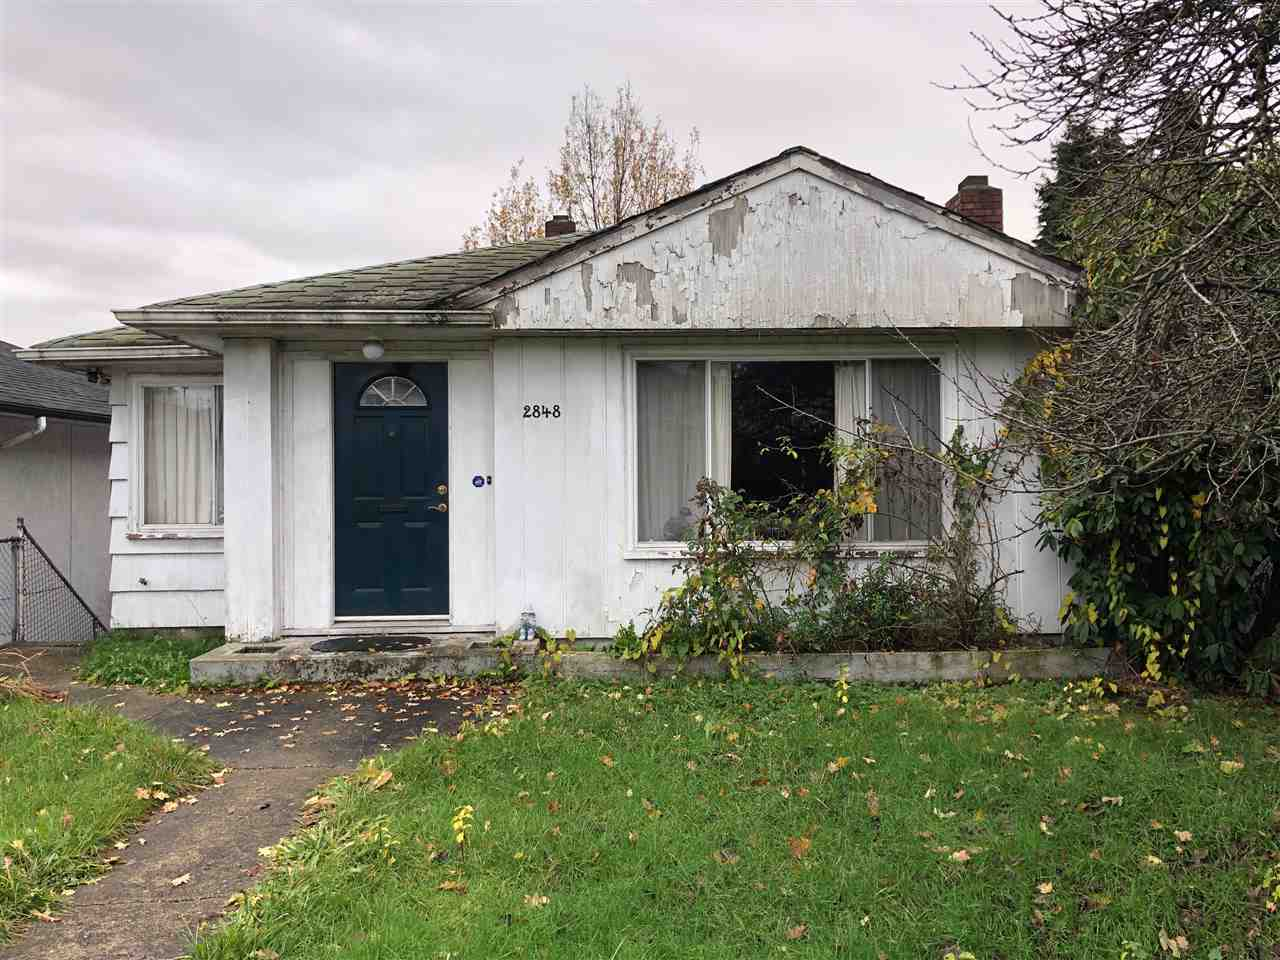 LAND ASSEMBLY! Excellent location! Walking distance to Renfrew Skytrain Station, bus stops, shopping and offices. Outstanding investment or development opportunity! Properties currently available: 2826, 2838, 2848, 2856, 2862, 2870, 2876, 2882, 2820, 2832 East Broadway. Please contact your agent for more information!